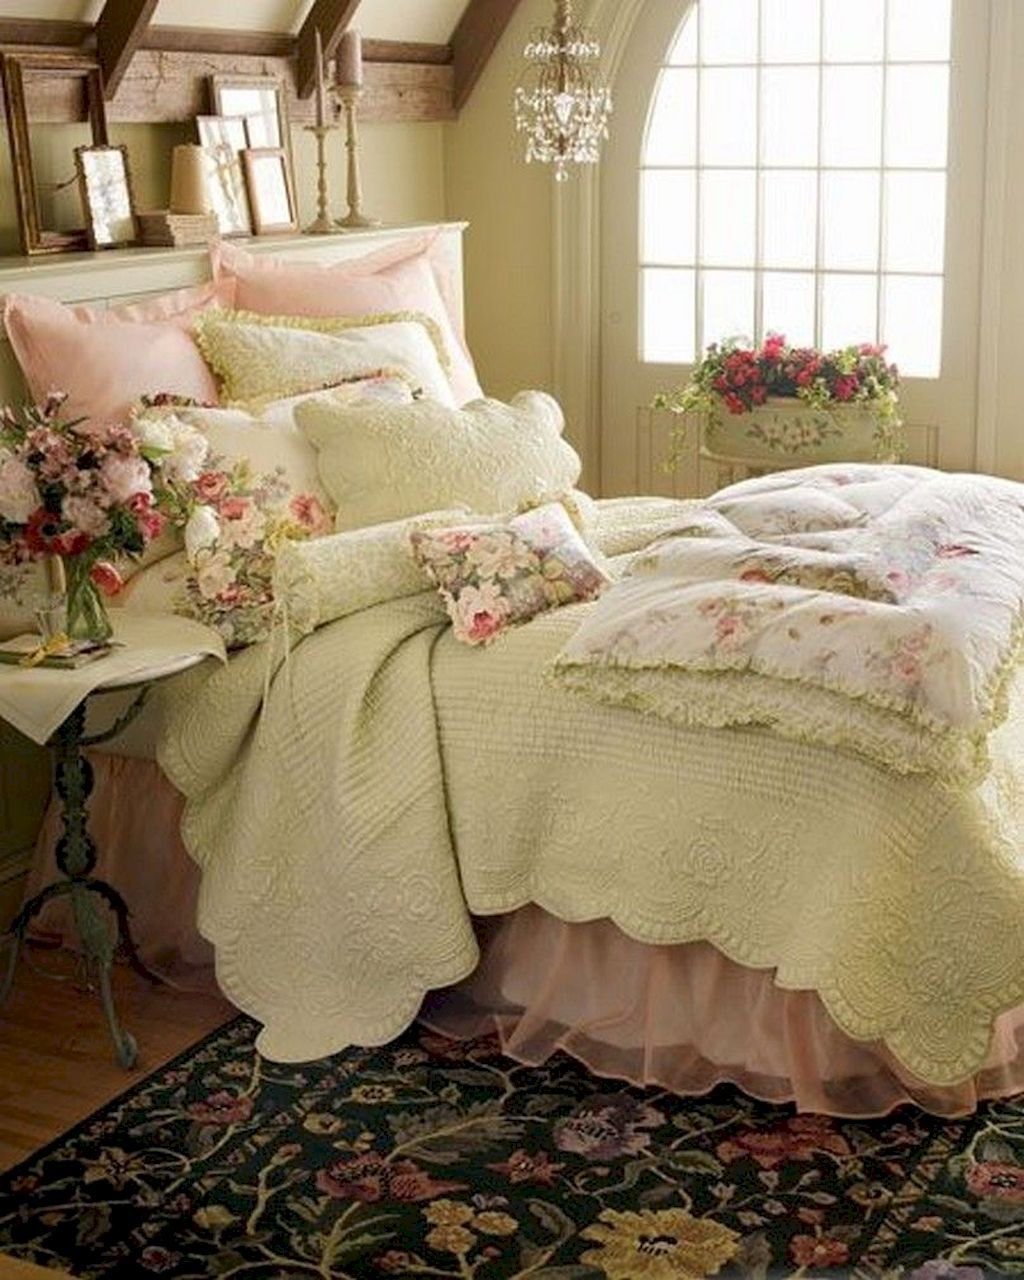 Simple French Country Bedroom Decor Ideas Budget Decorating